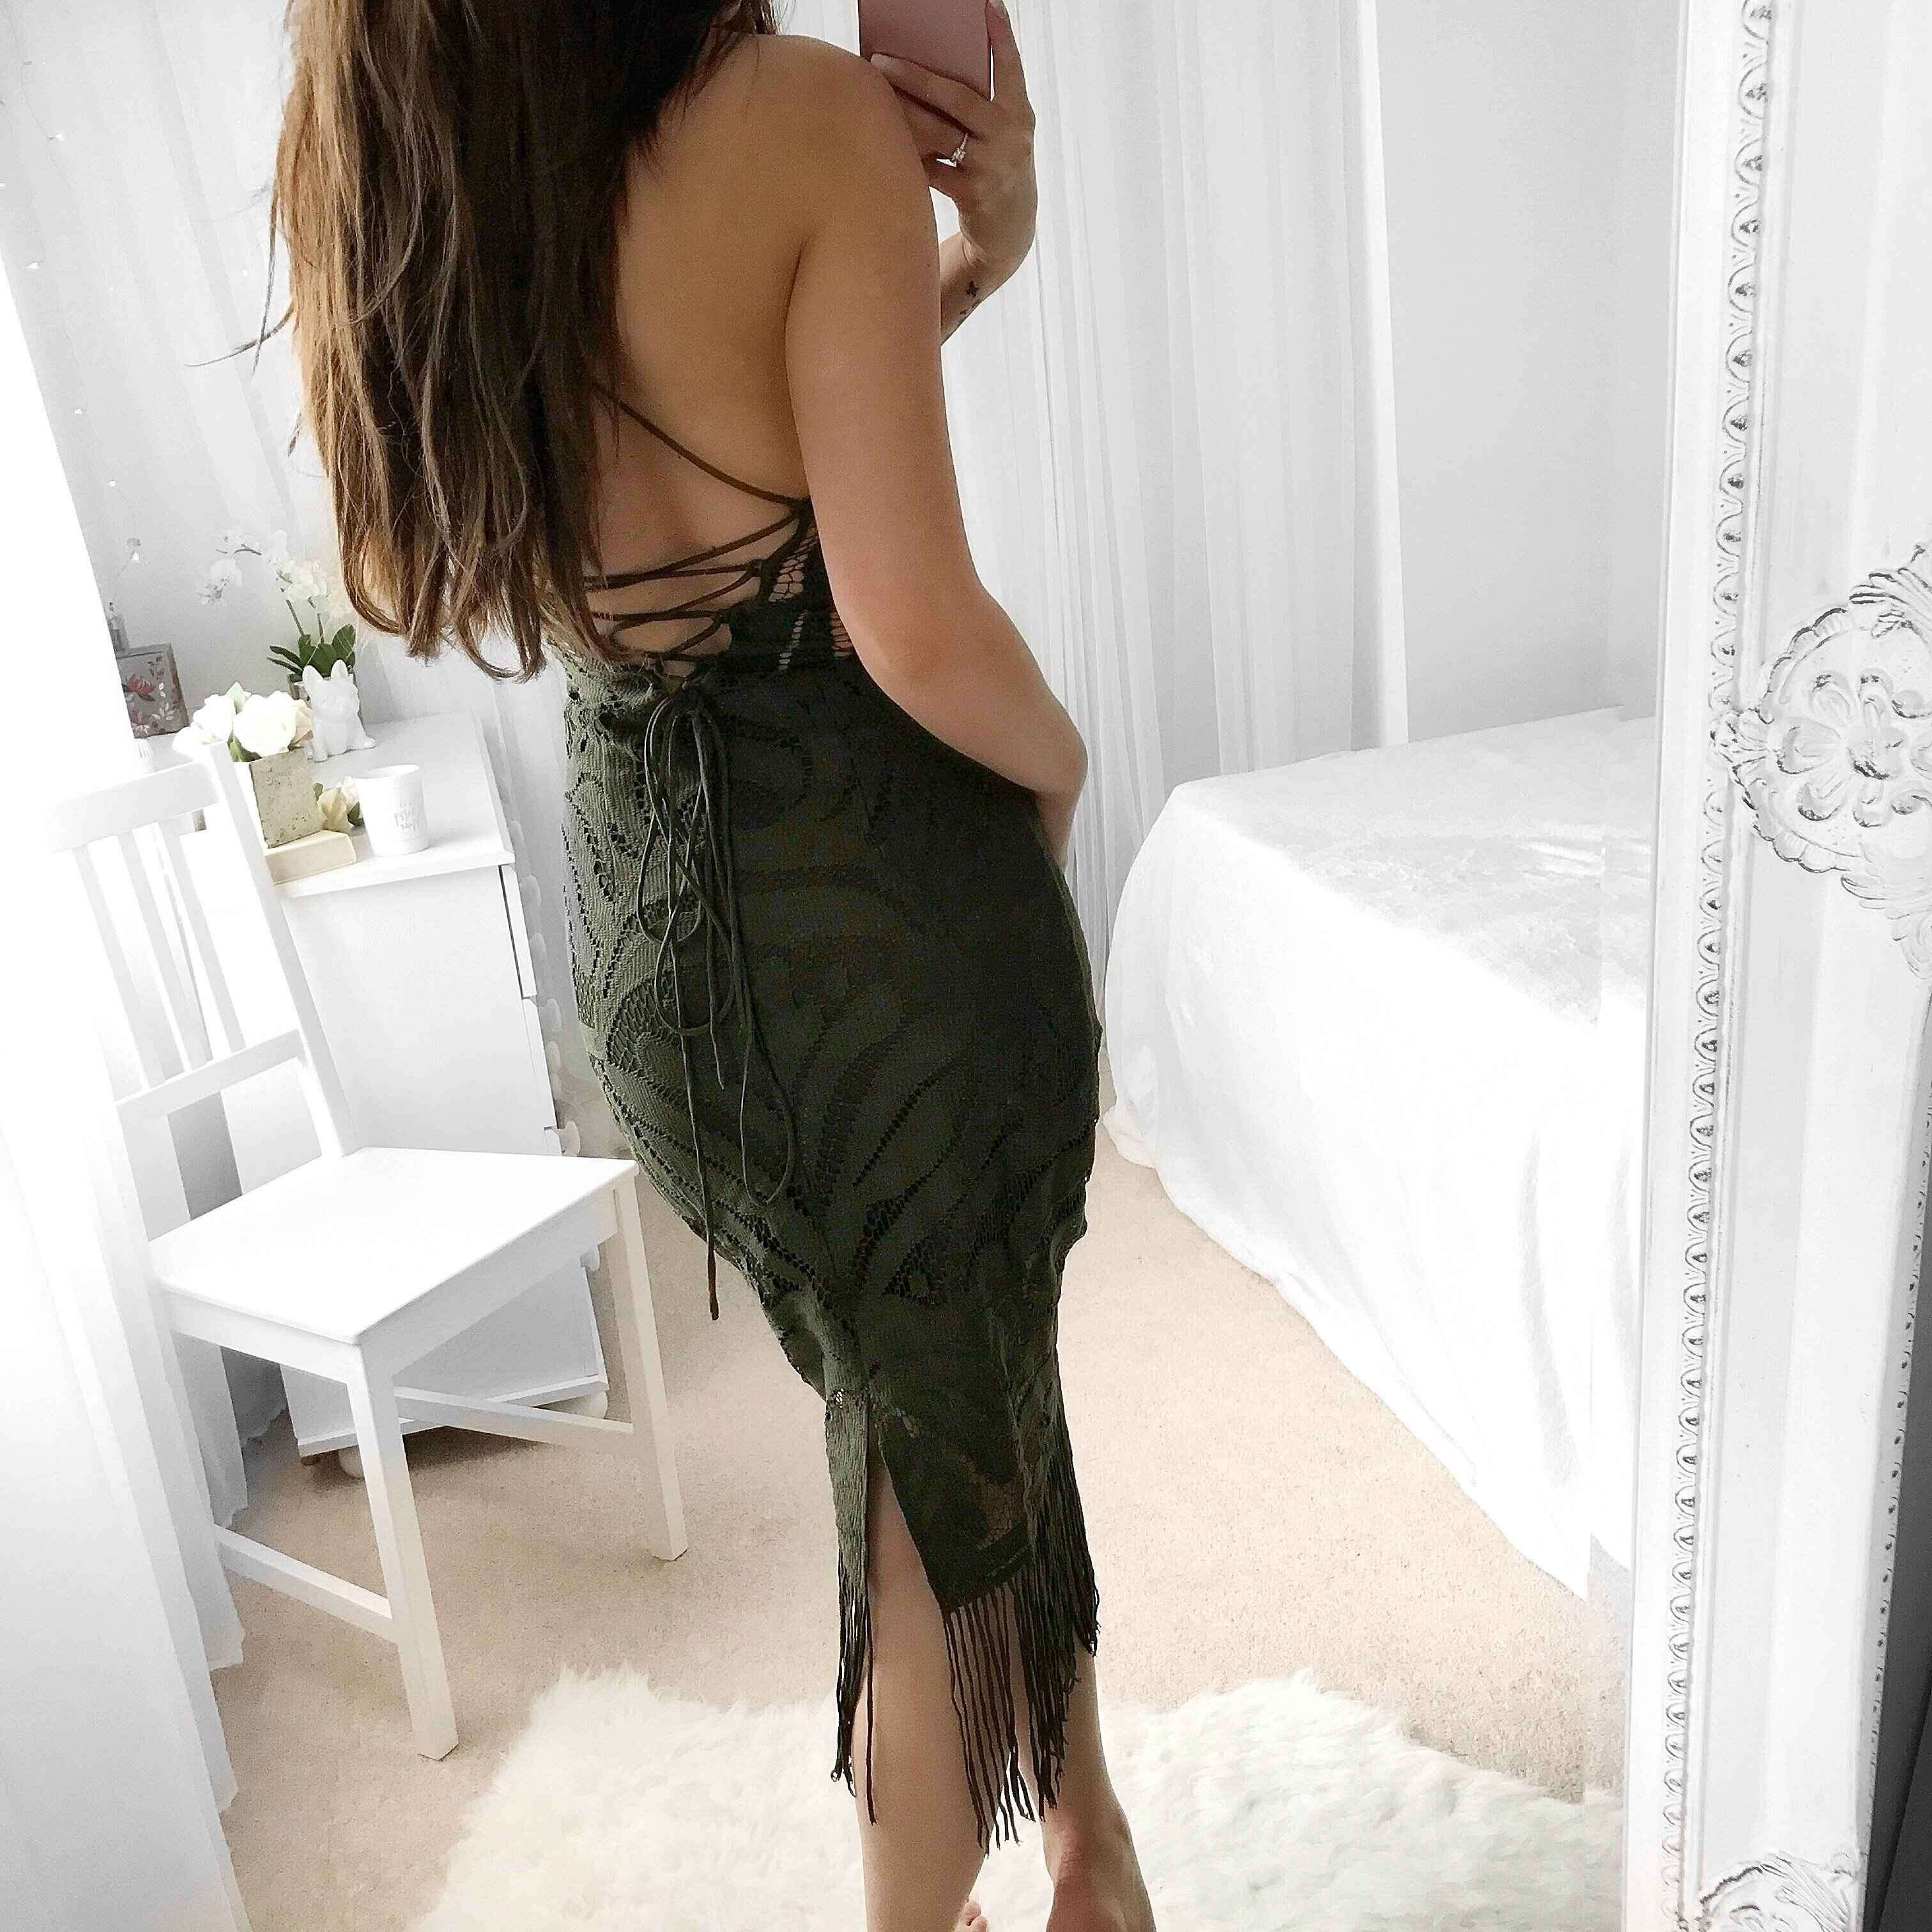 Rayon - Green Strapy Sleeveless Over Knee Lace Tassels Party Bandage Dress HJ080139-Green